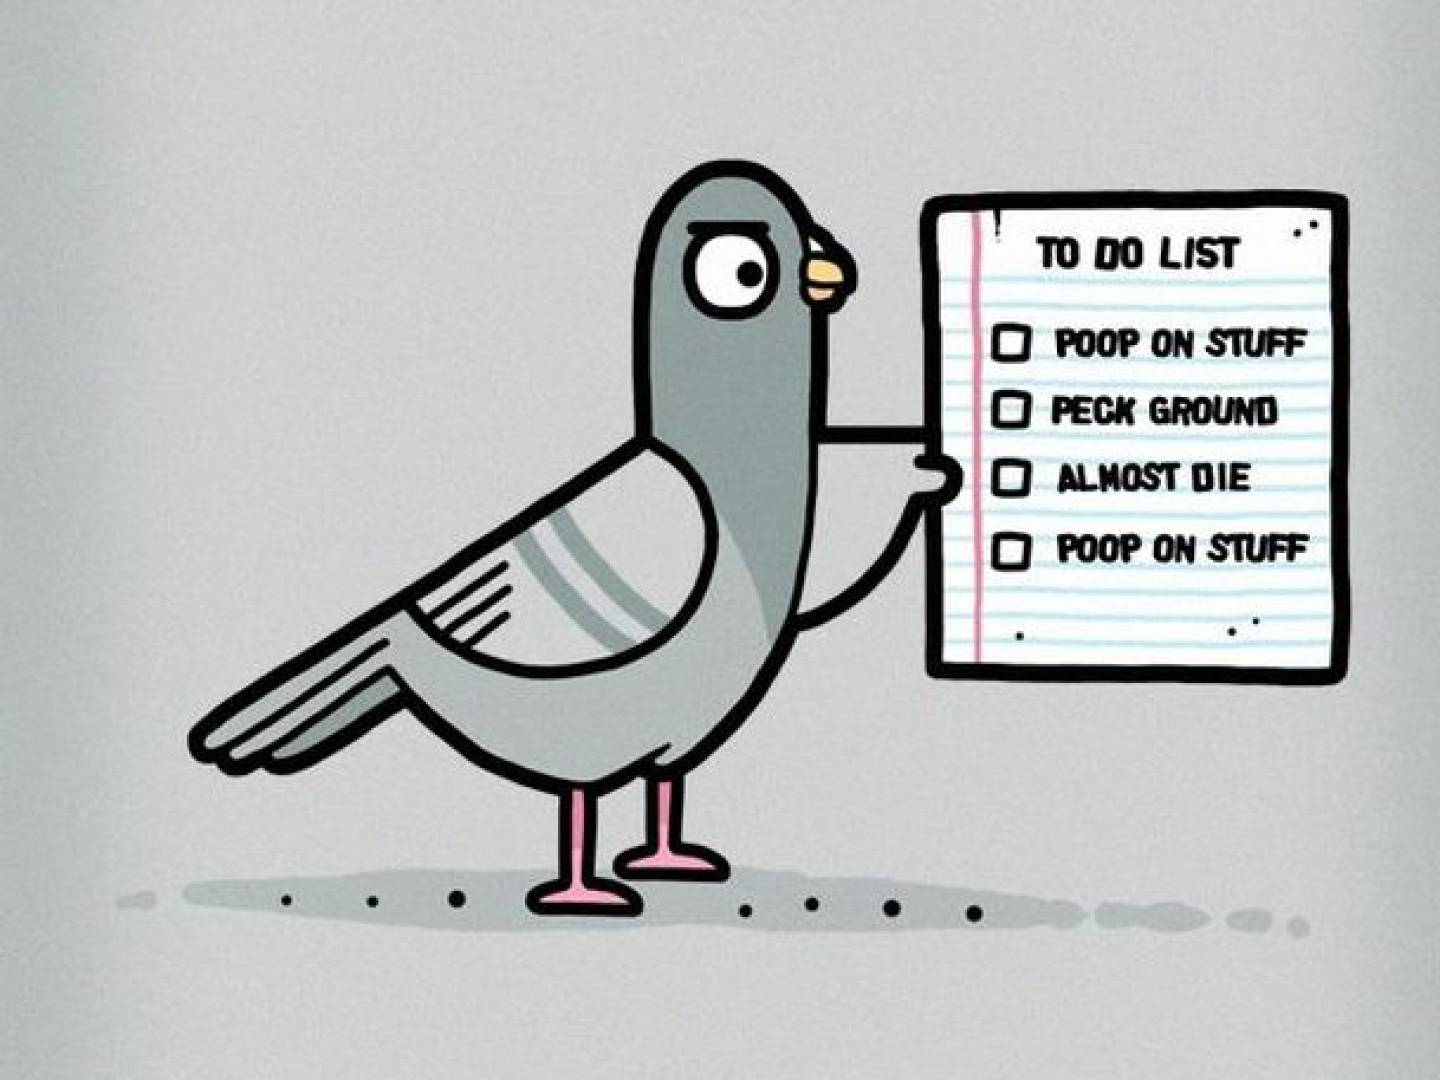 pigeon-to-do-list